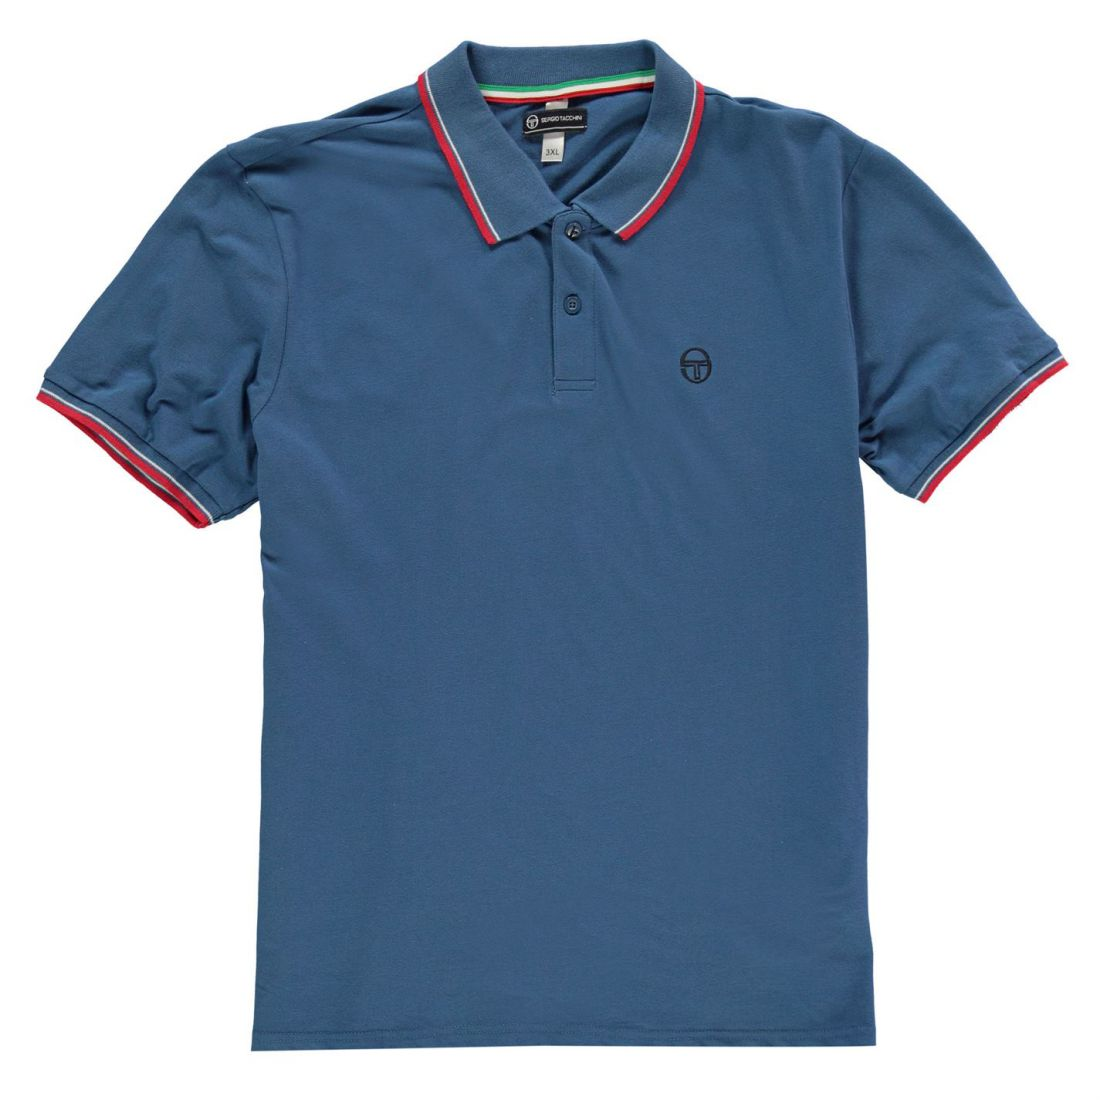 8b4954090 Details about Sergio Tacchini Mens Zuck Polo Shirt Classic Fit Tee Top  Short Sleeve